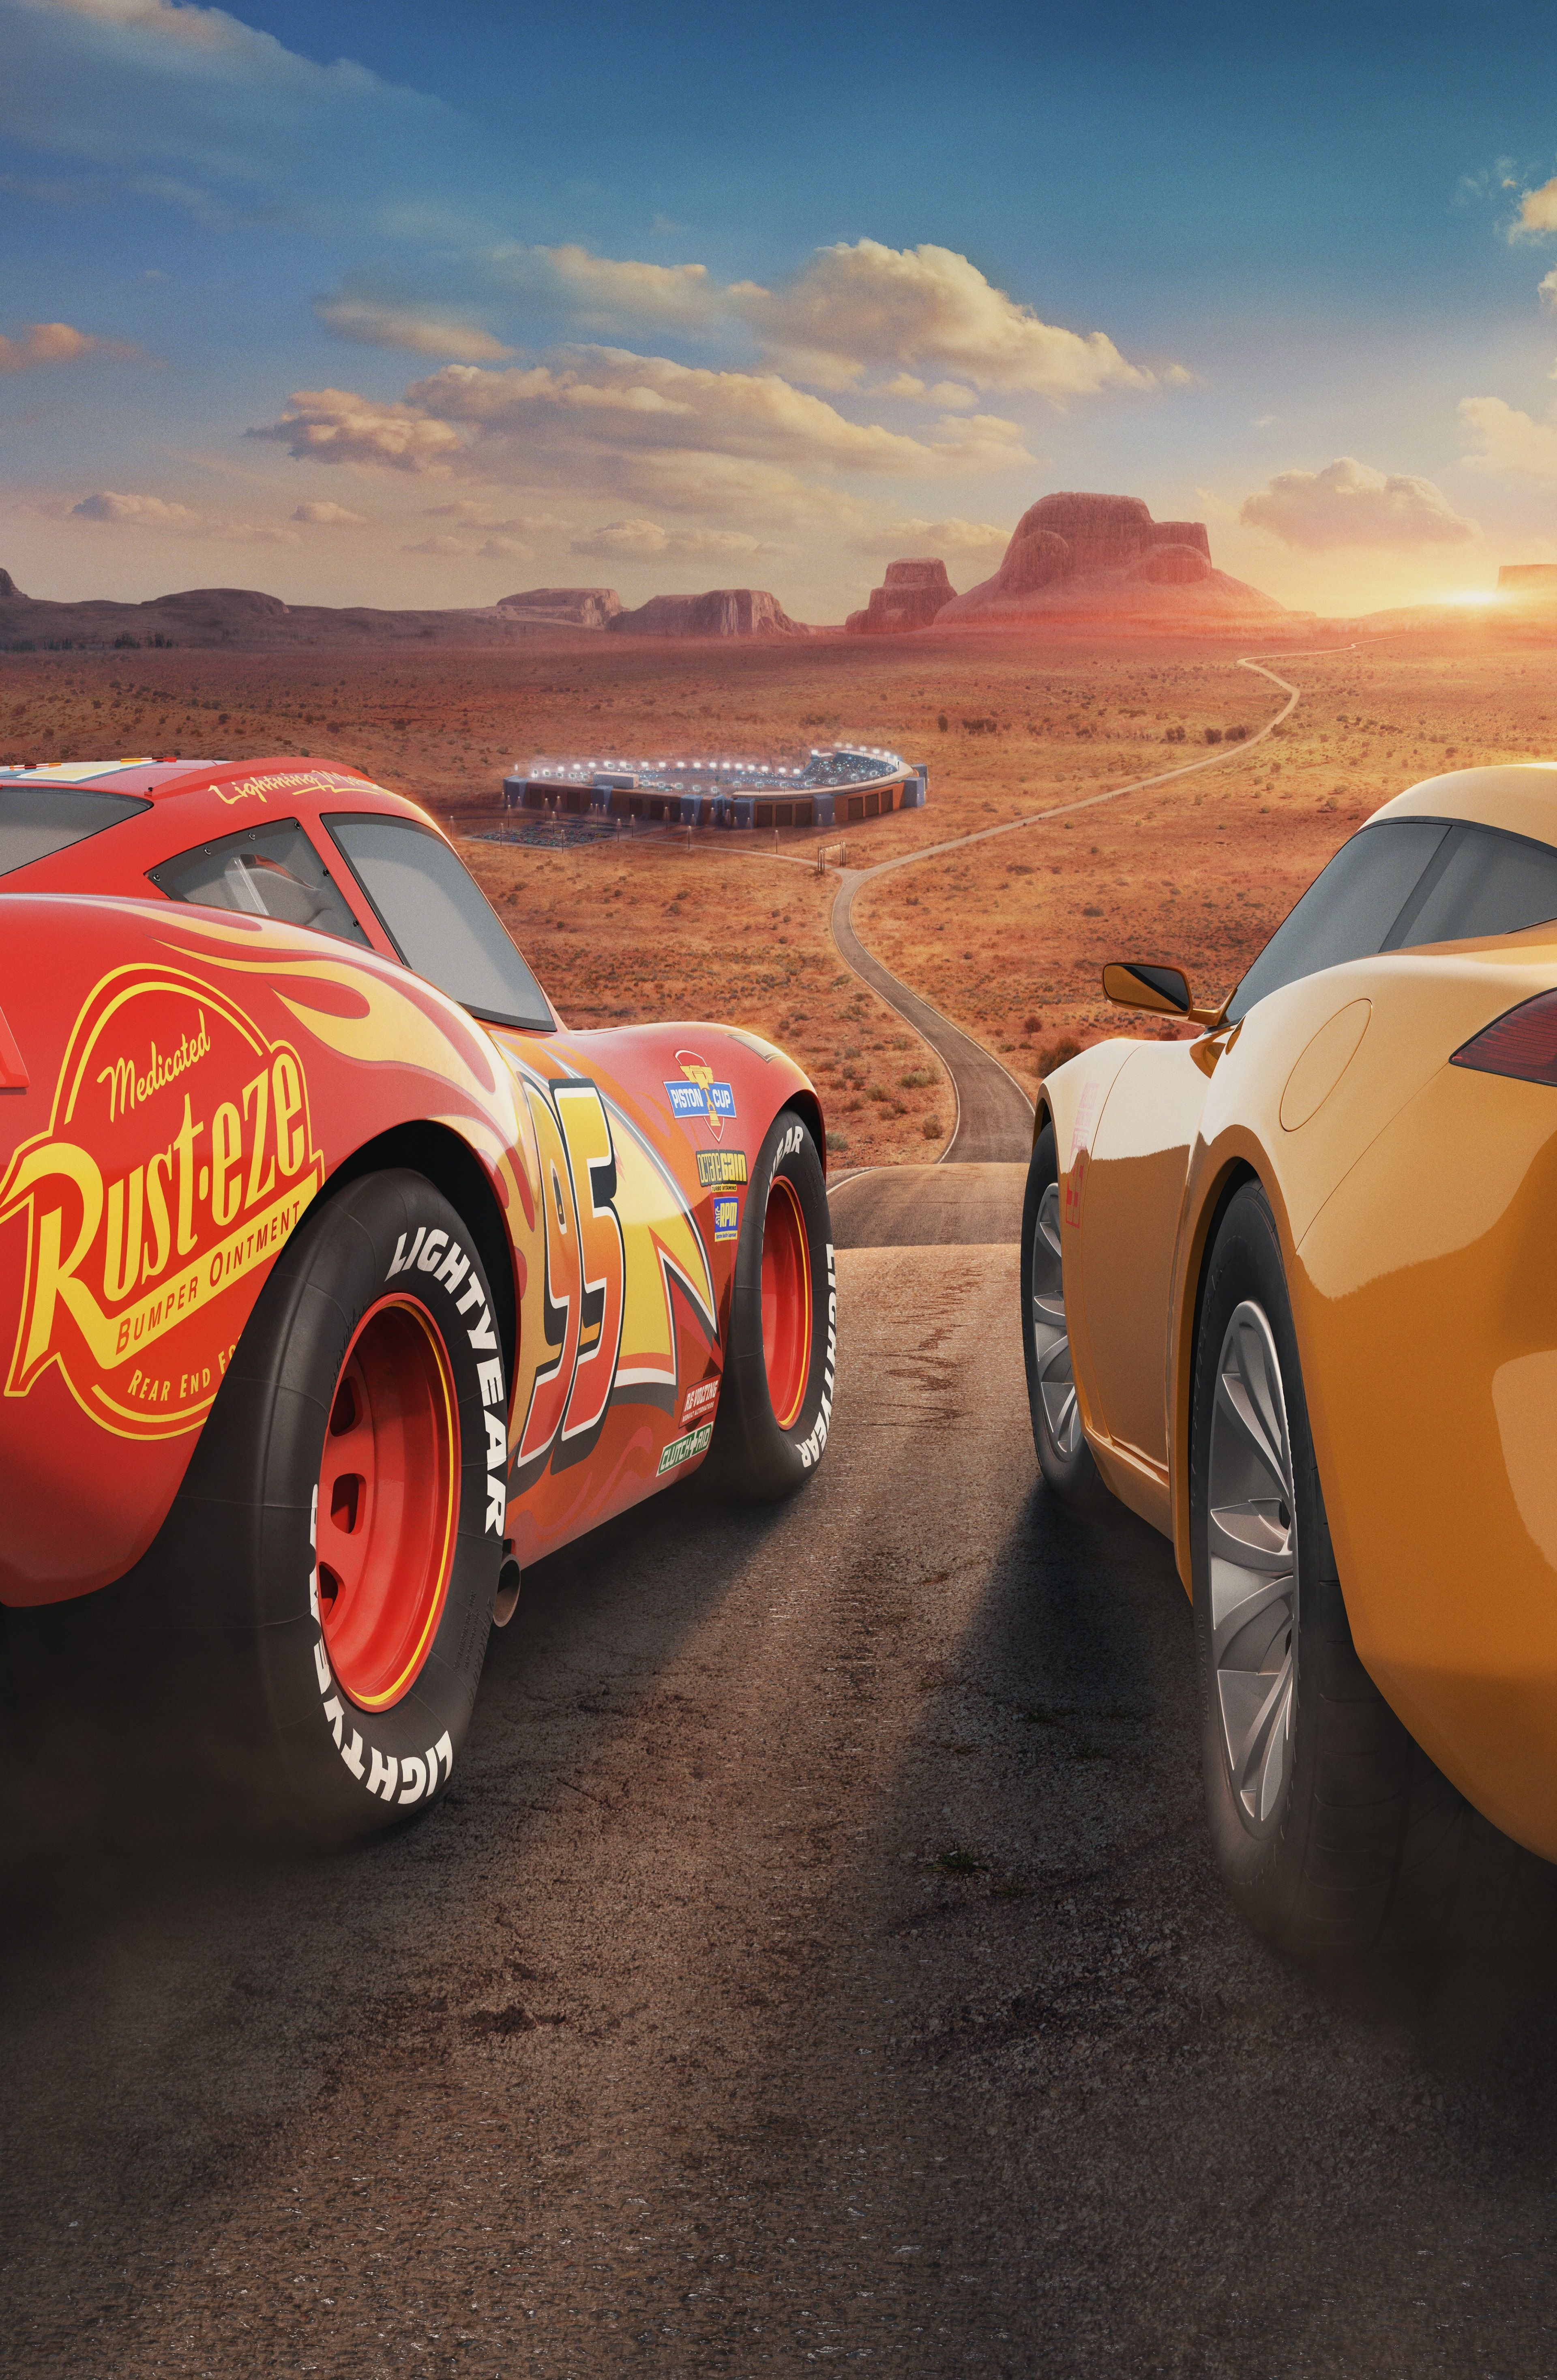 3840x5869 Cars 3 4k Desktop Wallpaper Hd Disney Cars Wallpaper